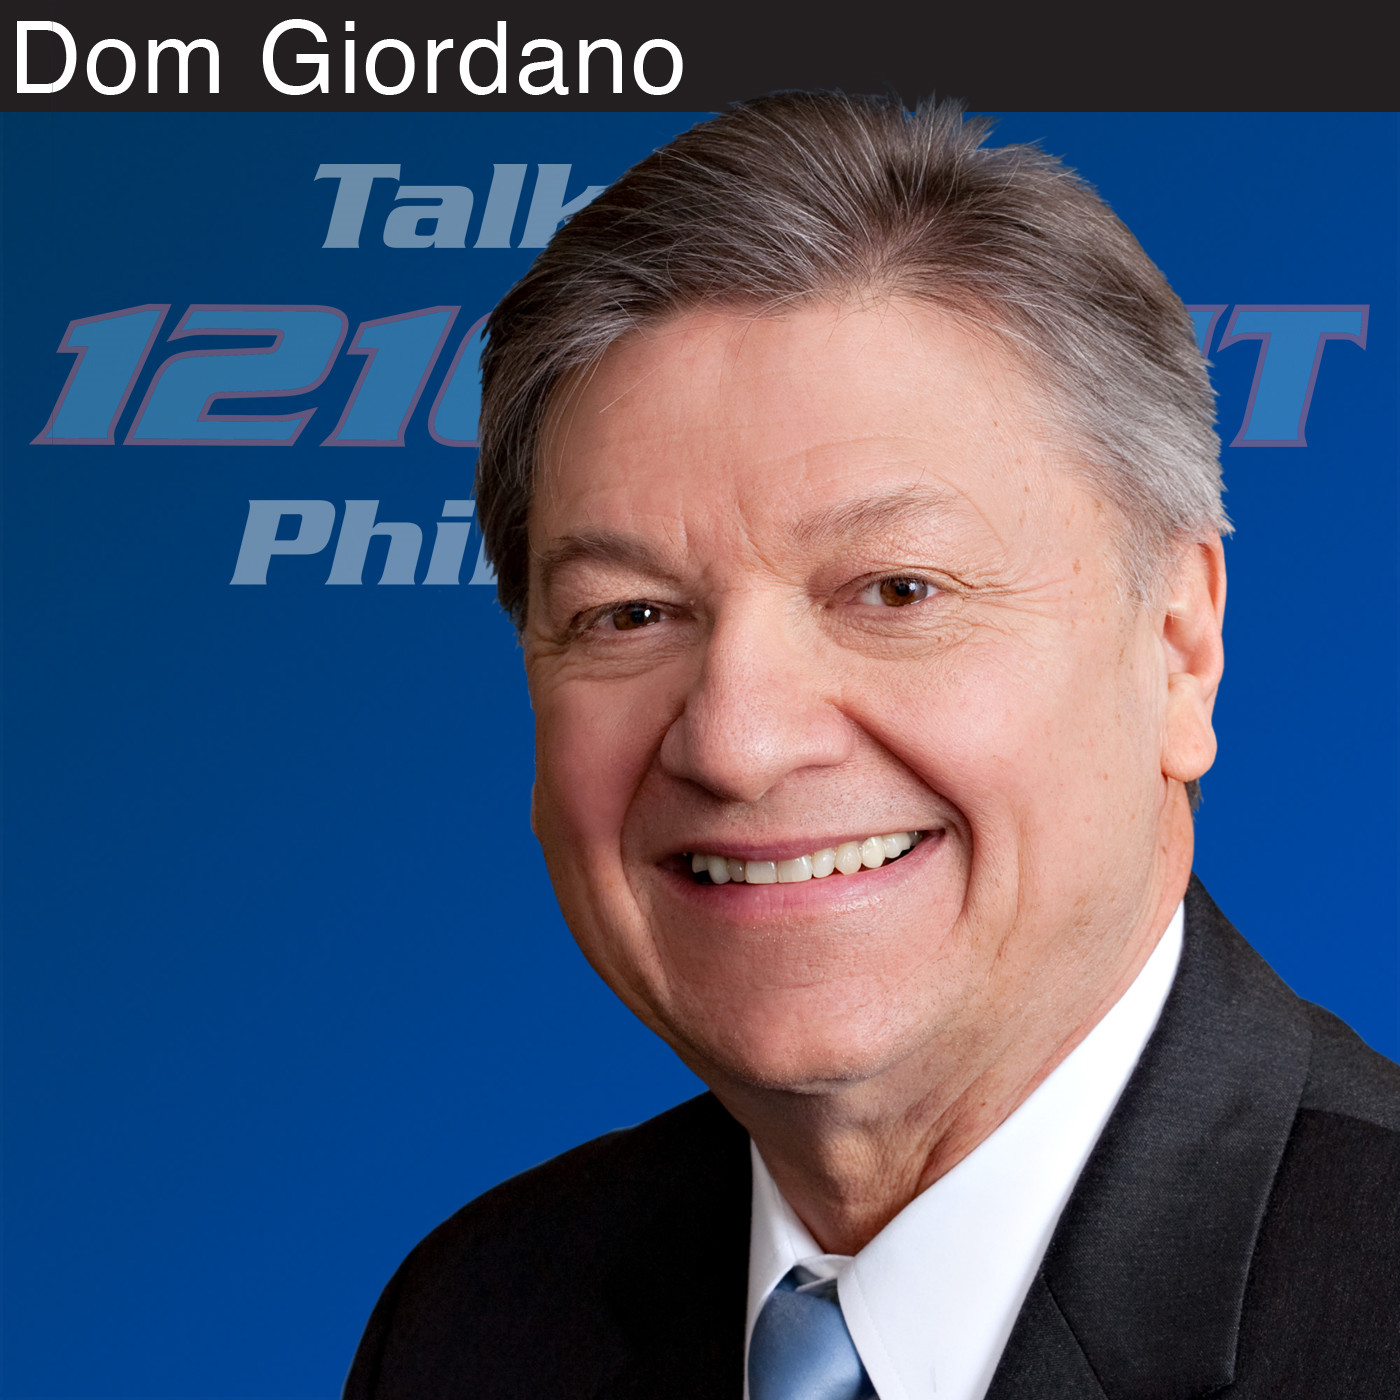 The Dom Giordano Program